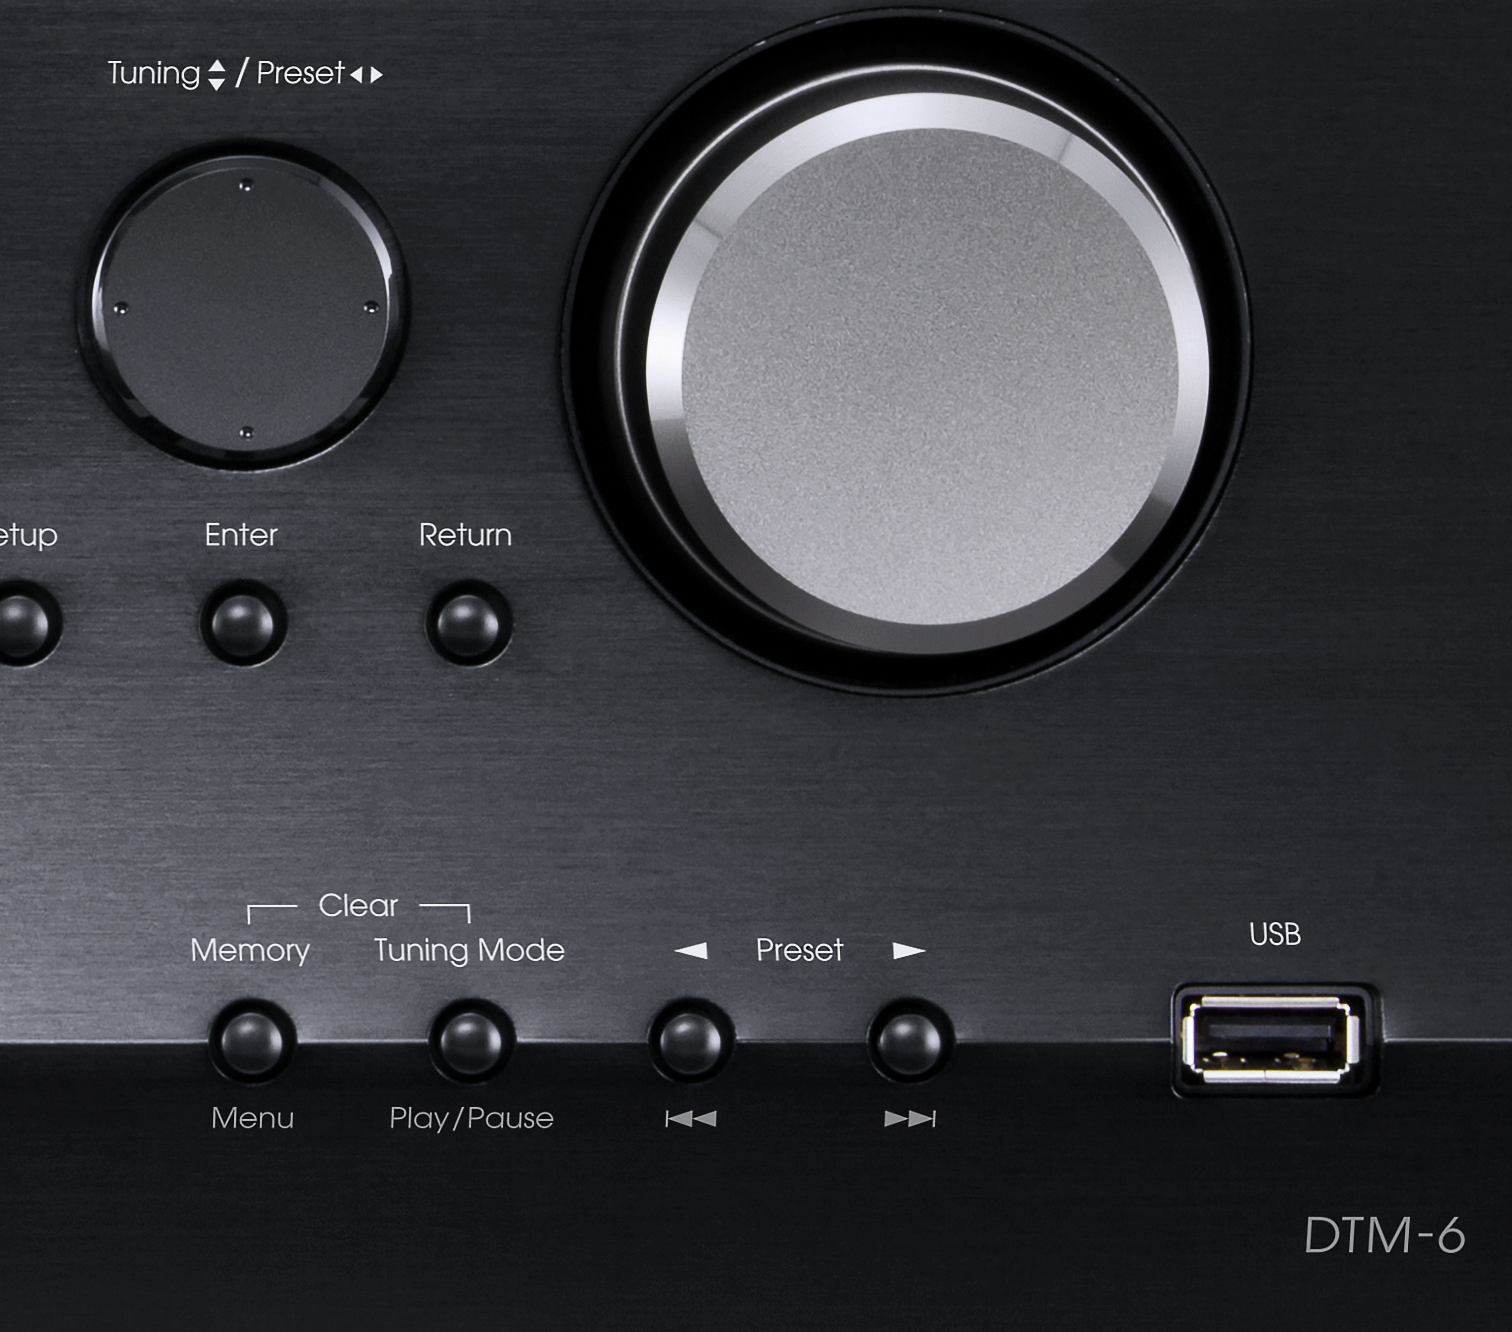 DTM-6 | INTEGRA HOME THEATER